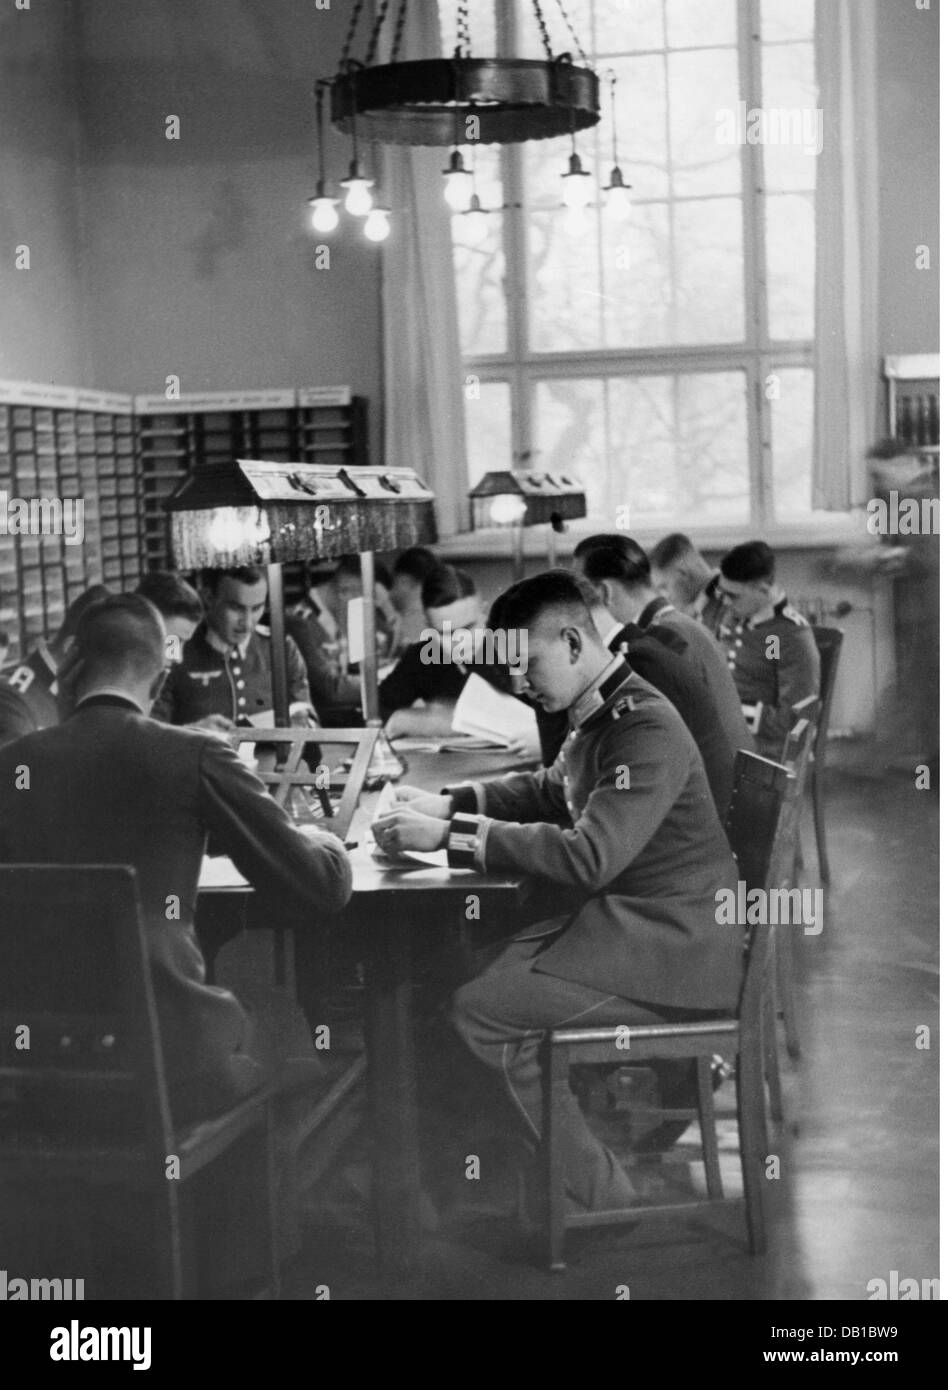 Nazism / National Socialism, military, medical service, education, millitary surgeon academy in Berlin, students - Stock Image